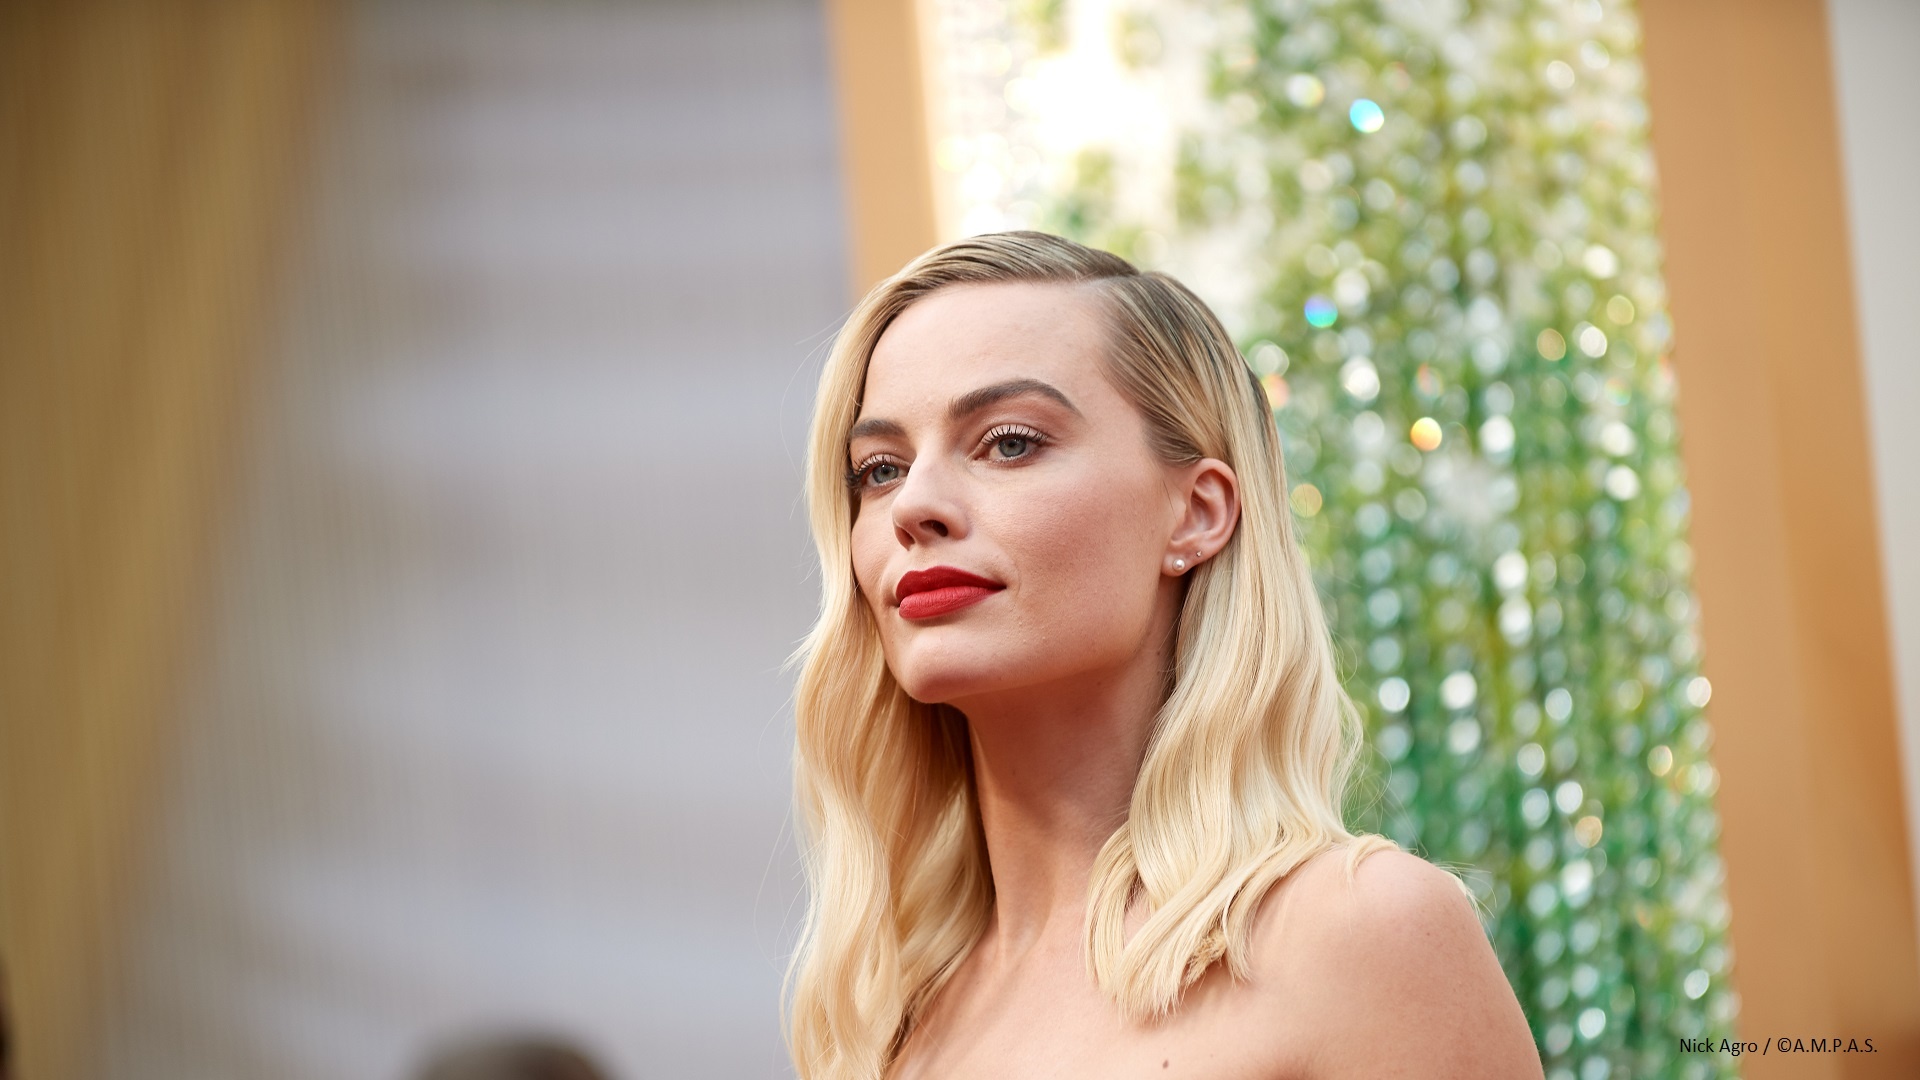 Margot Robbie arrives on the red carpet of The 92nd Oscars® at the Dolby® Theatre in Hollywood, CA on Sunday, February 9, 2020.